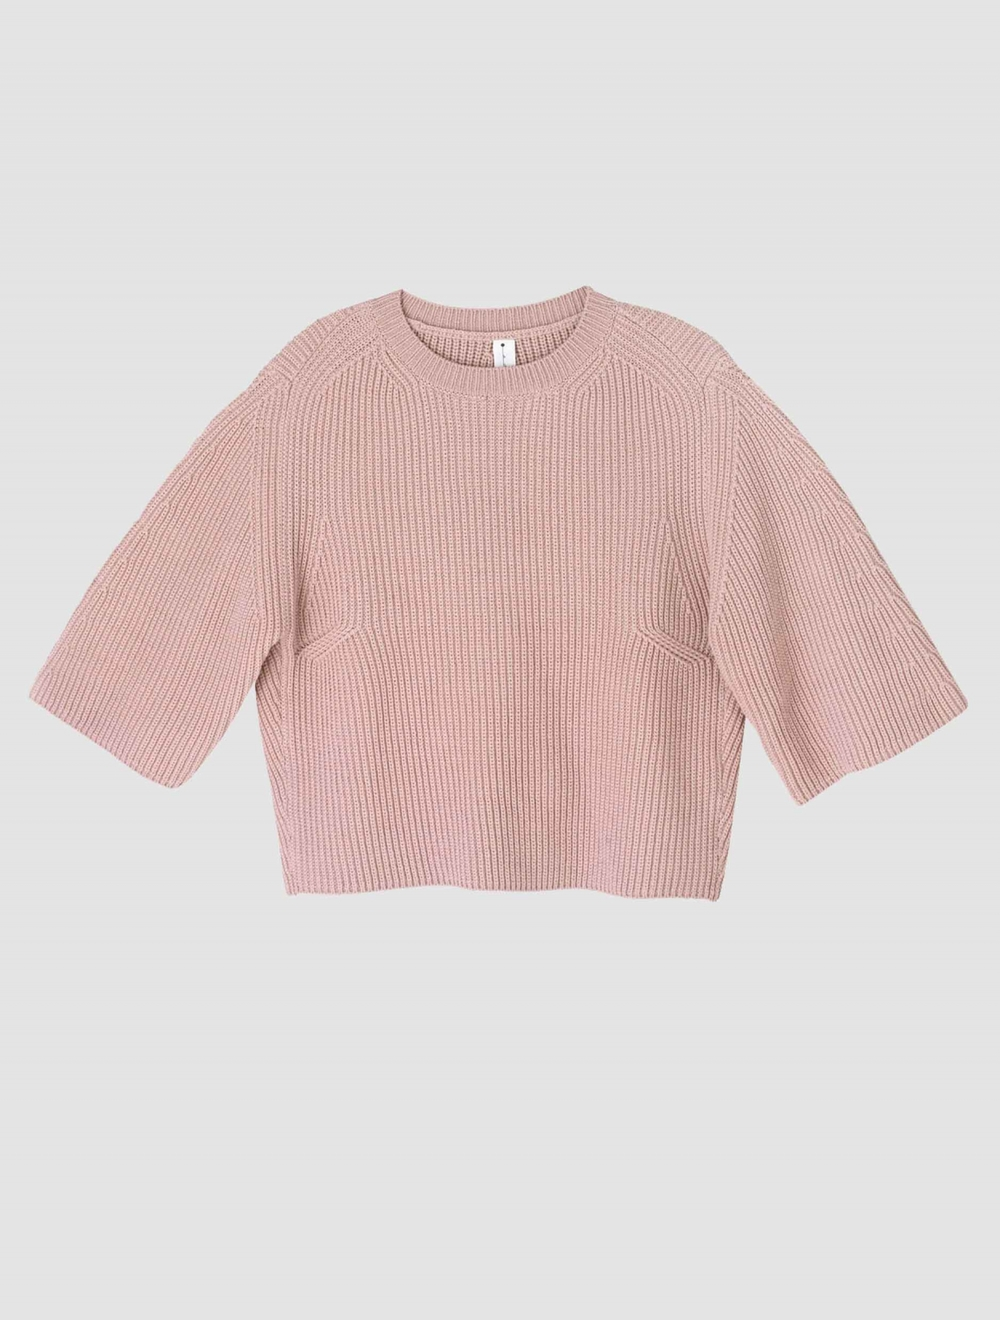 KENSINGTON_JUMPER_PINK_GREY_1250_1650_s_c1.jpg